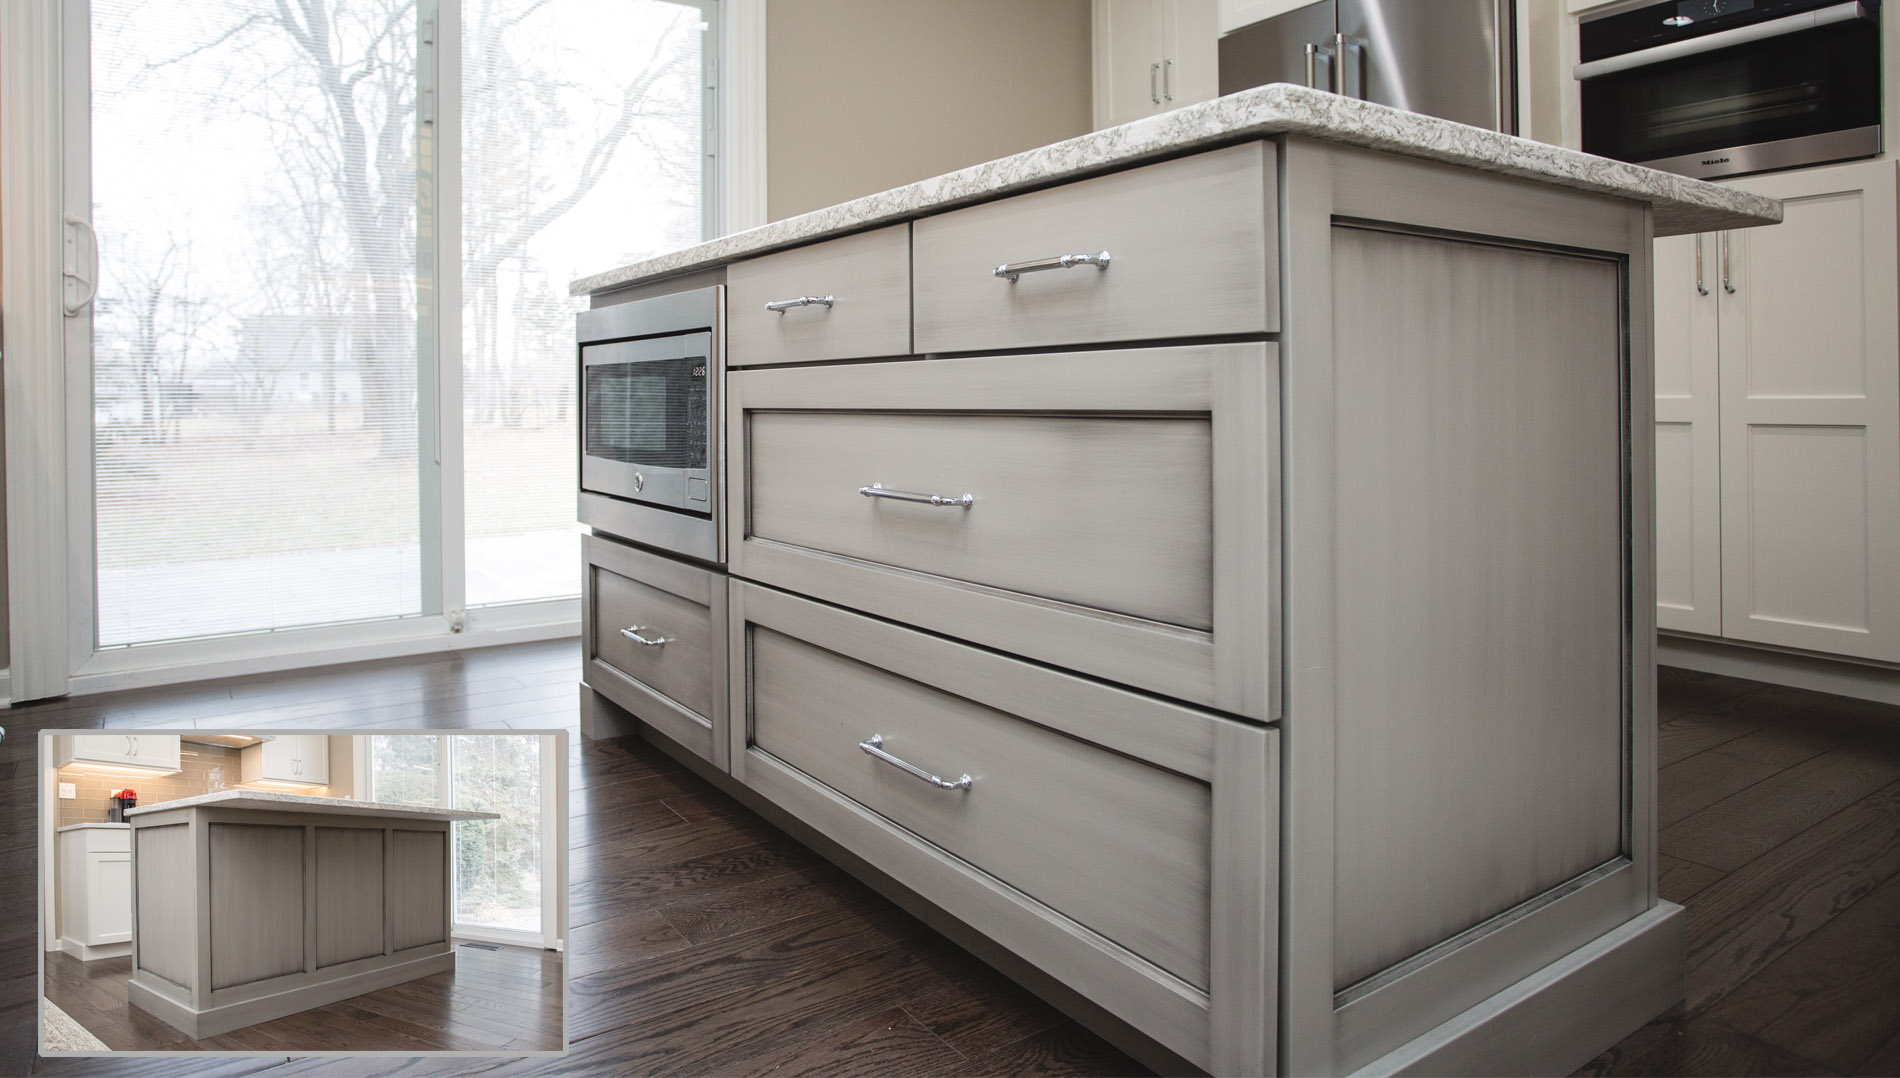 The Rich Warm Grey Tone Of The Island Is Enhanced By An Artistic Glazed  Finish. The Island Is Home To Storage, Seating And A Drawer Style Microwave.